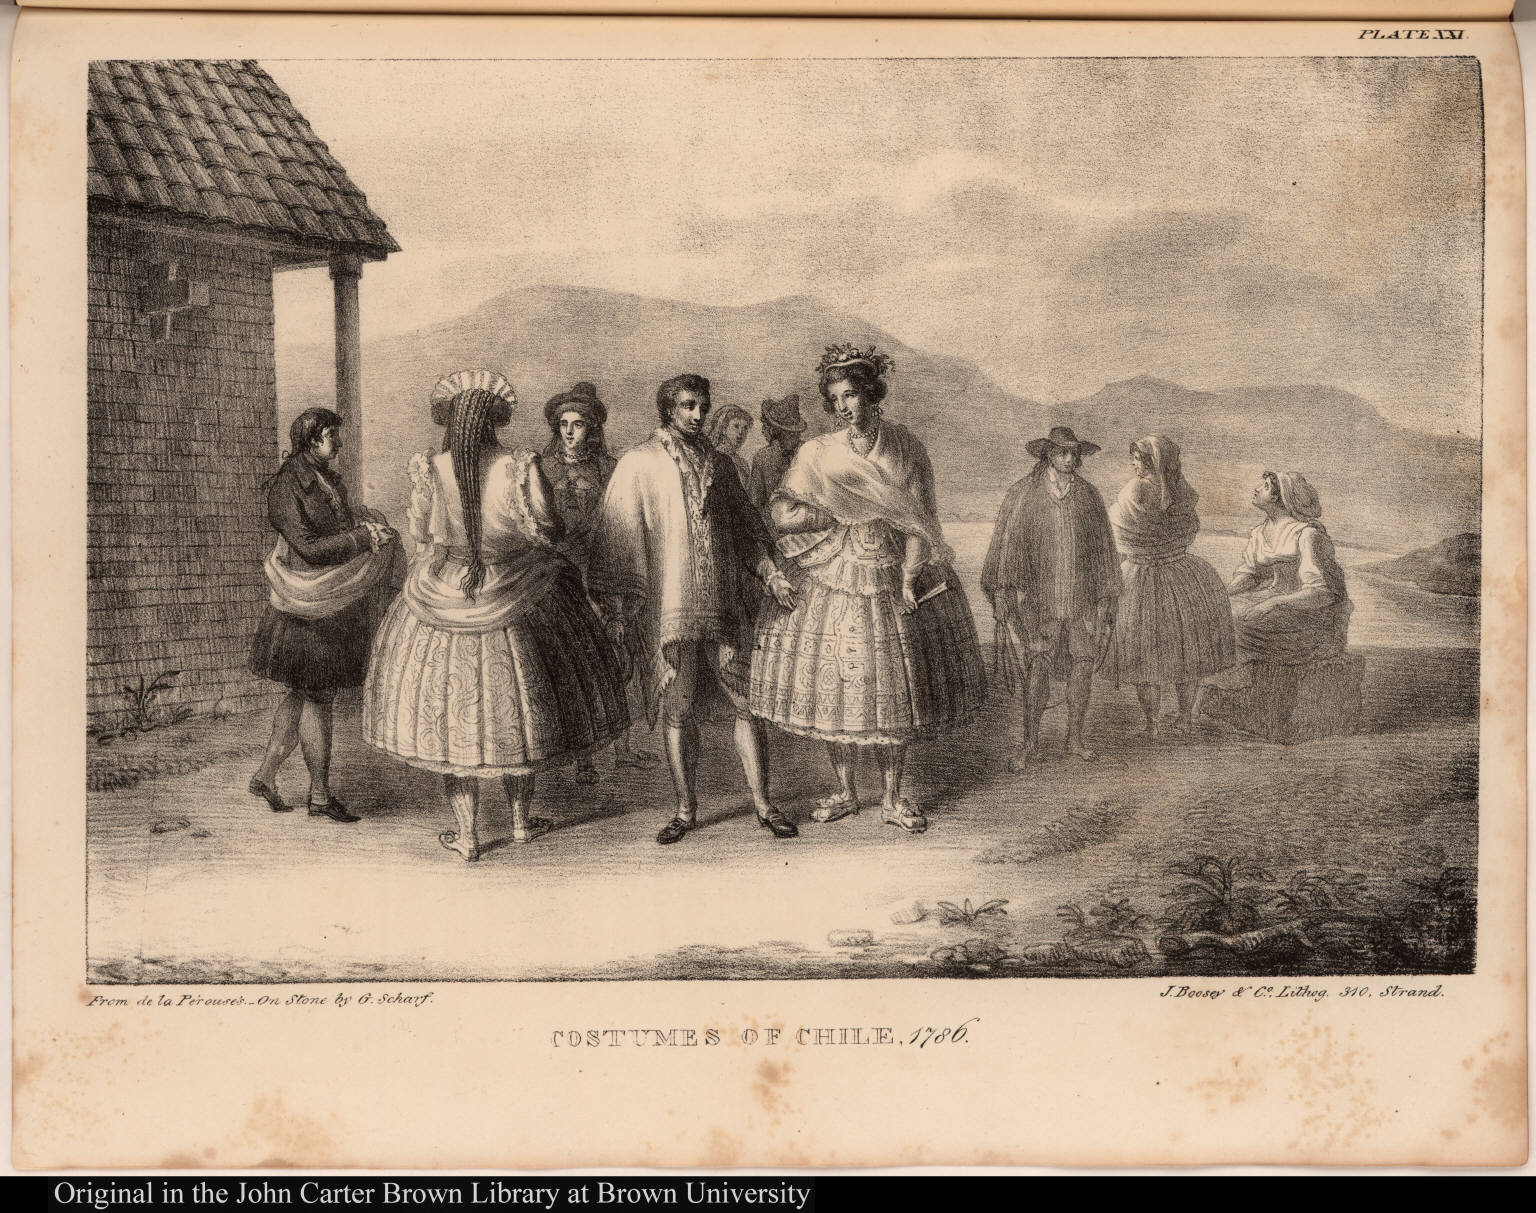 Costumes of Chile. 1786.